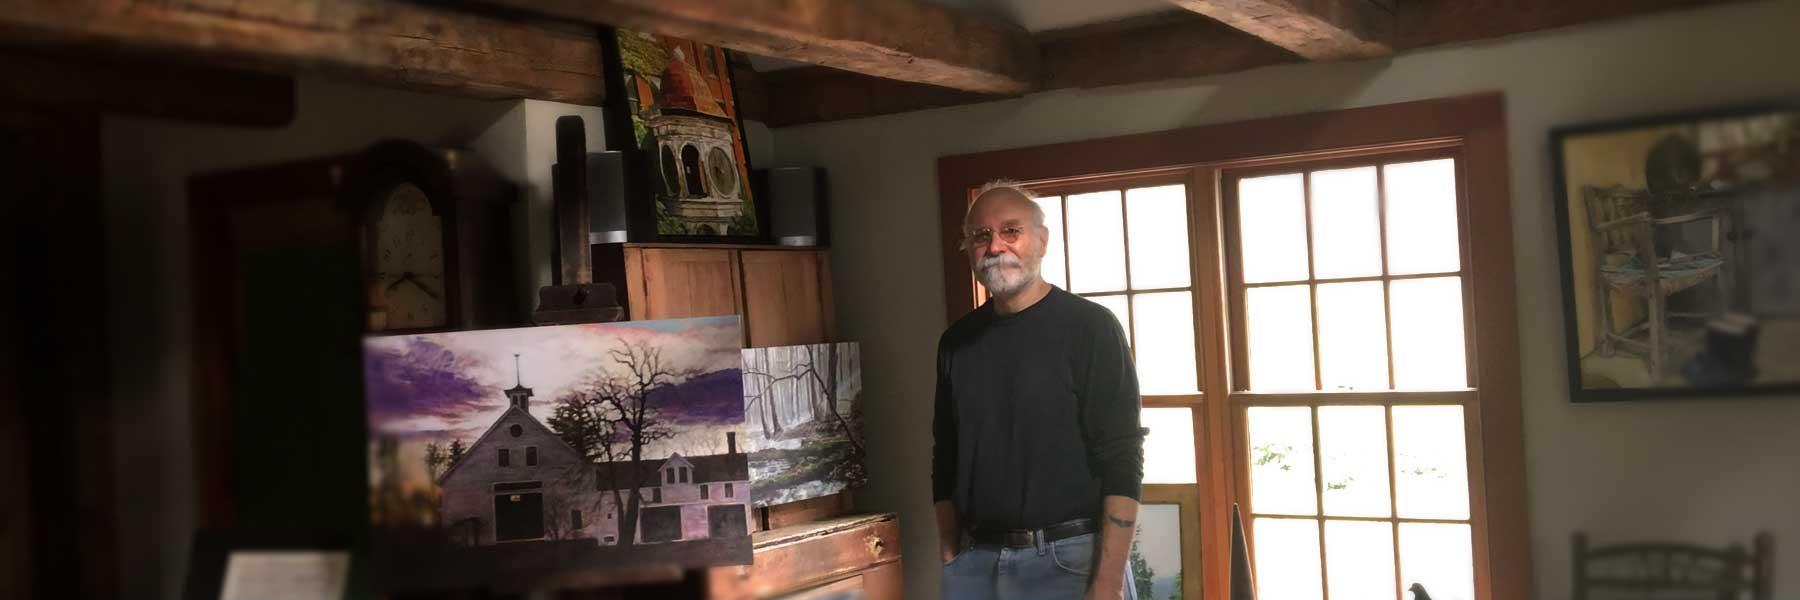 Tom Pirozzoli in his art studio painting